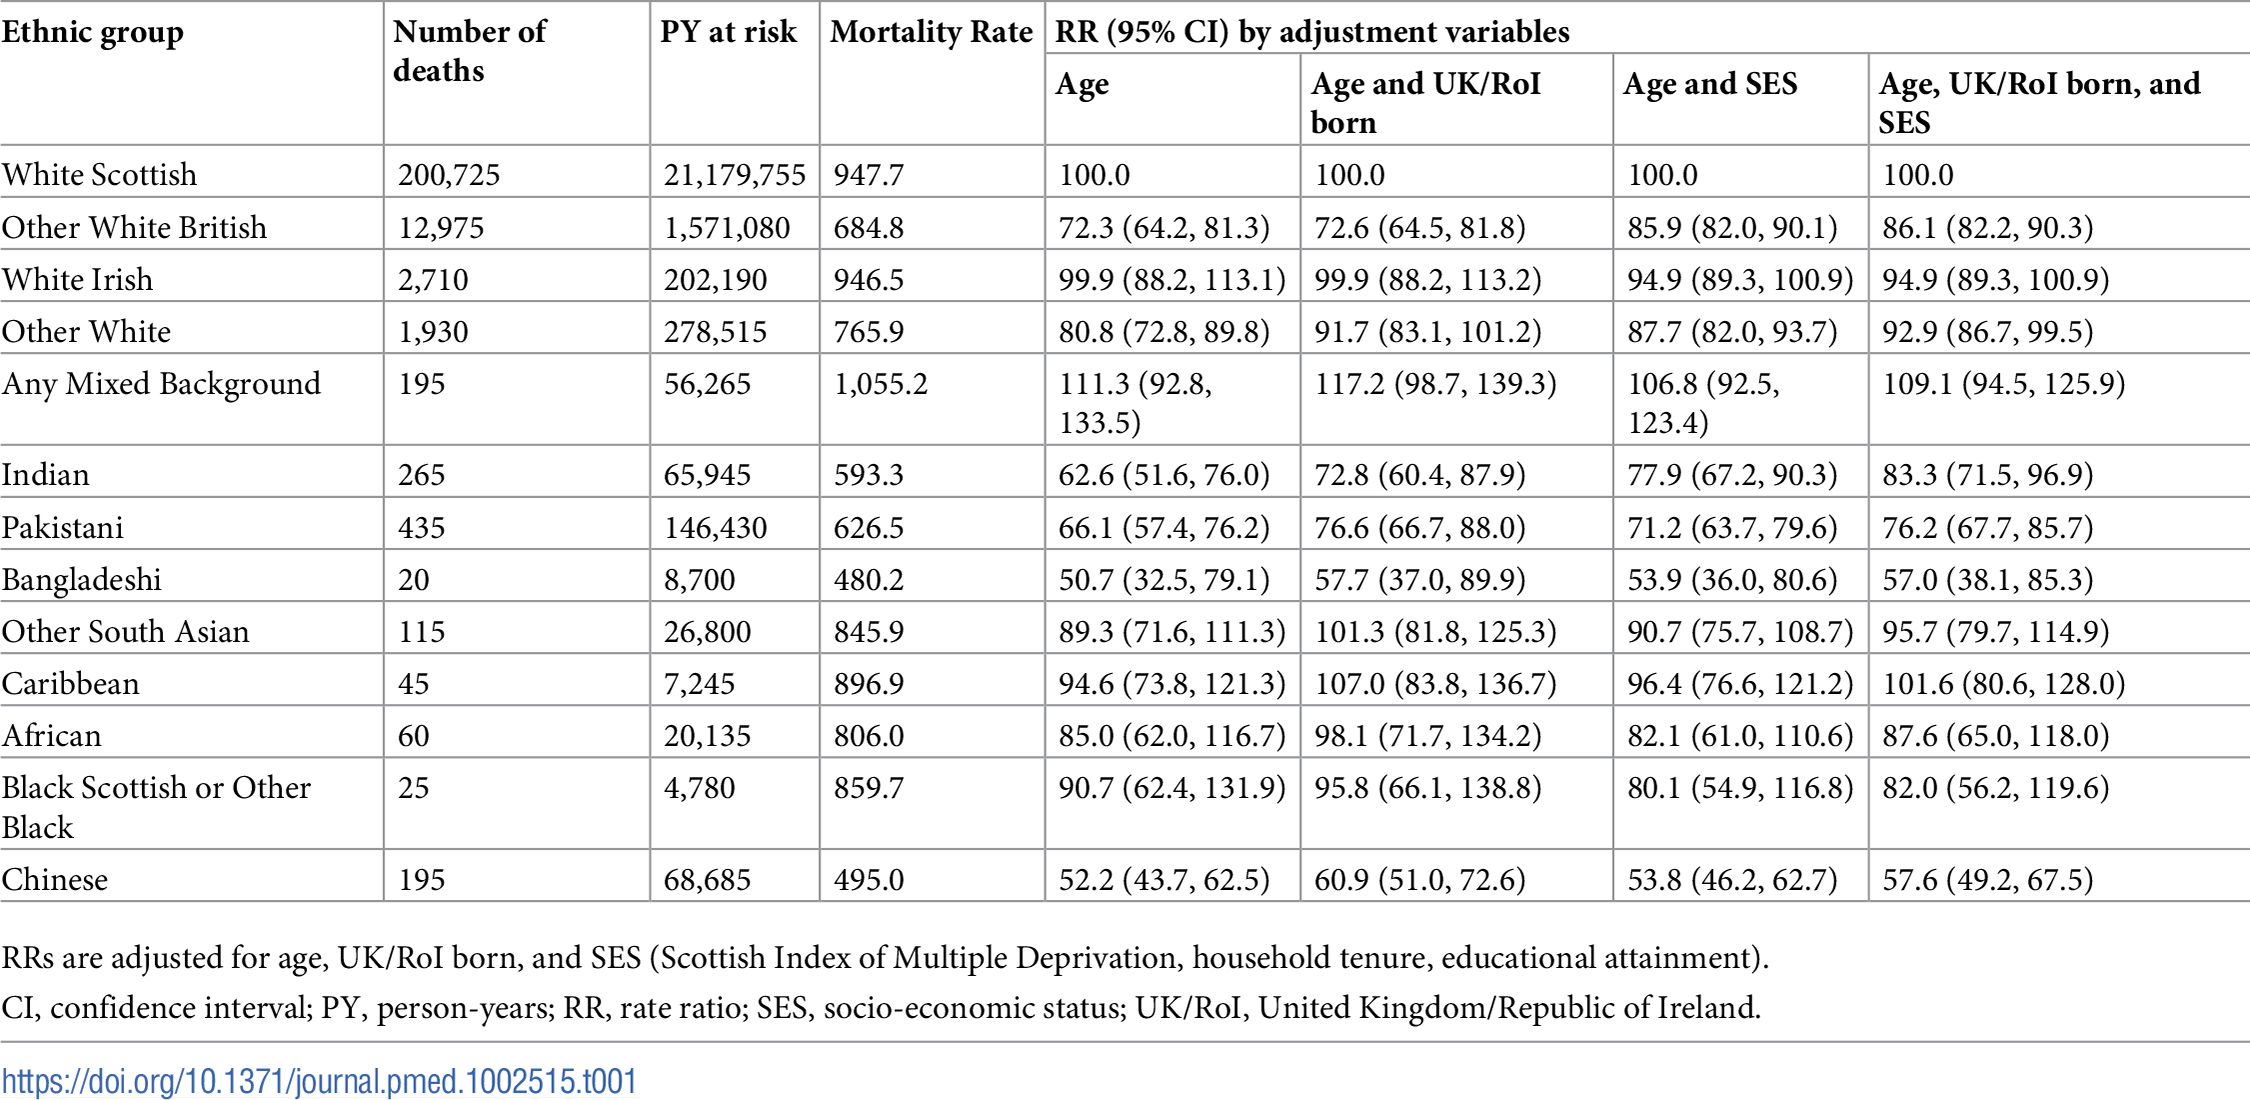 Age-adjusted mortality rates per 100,000 PY and RRs for all-cause mortality by ethnic group in males.